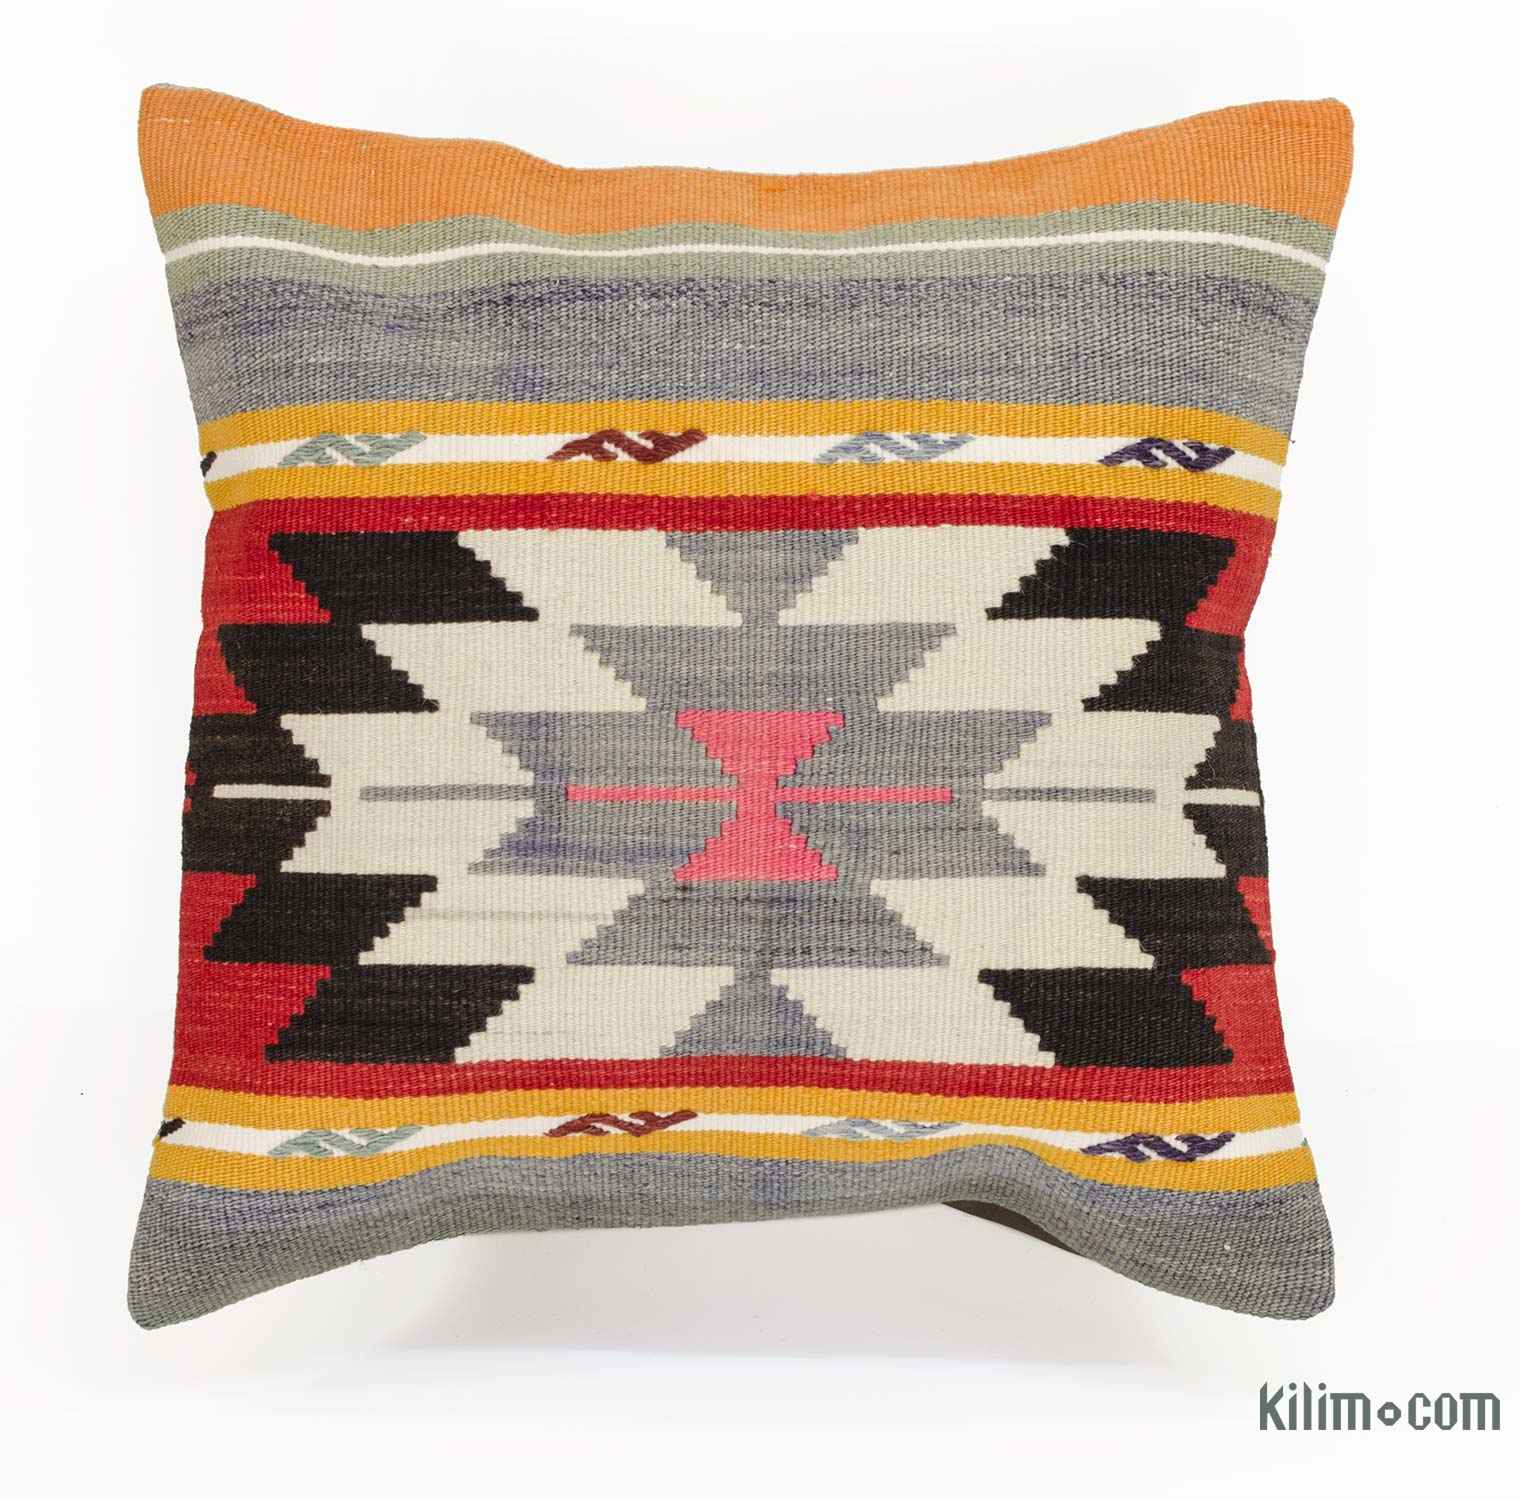 bee ways espadin photo style stylecaster to pillows kilim pillow sophisticated